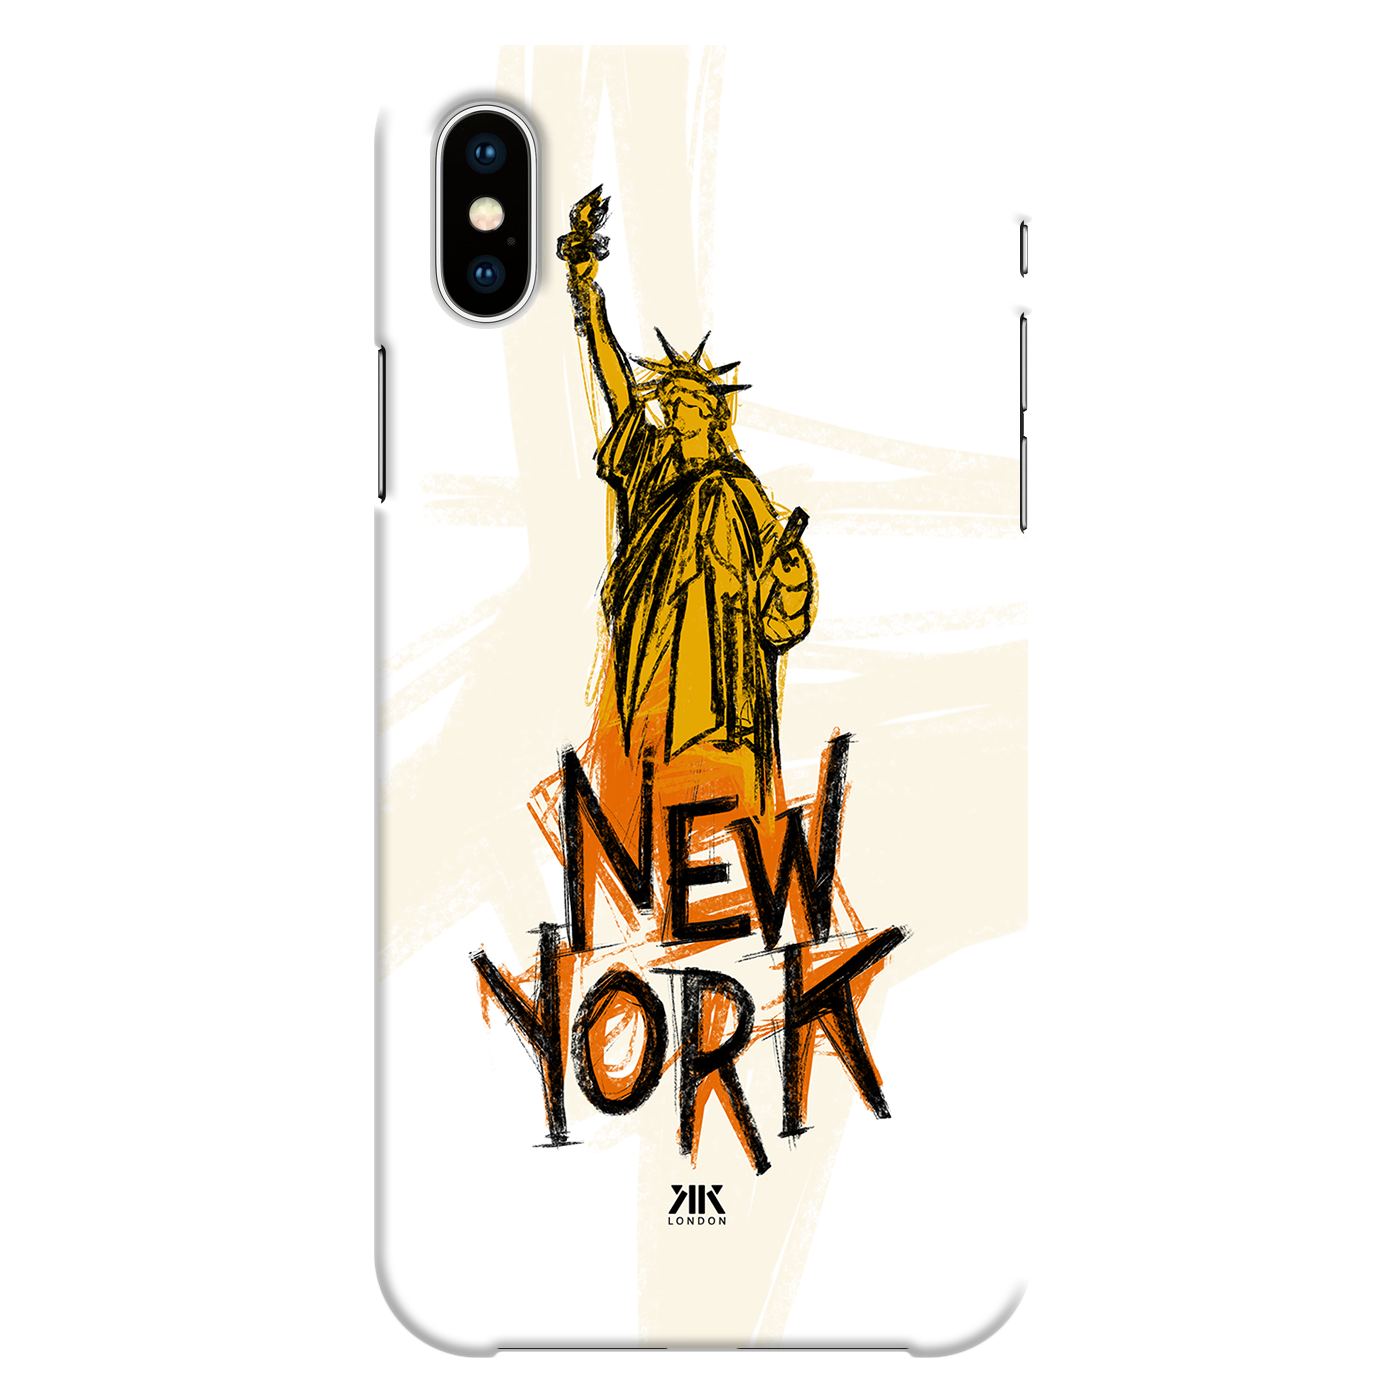 New York Symbol Sketch Phone Cases Covers By Kk Designs